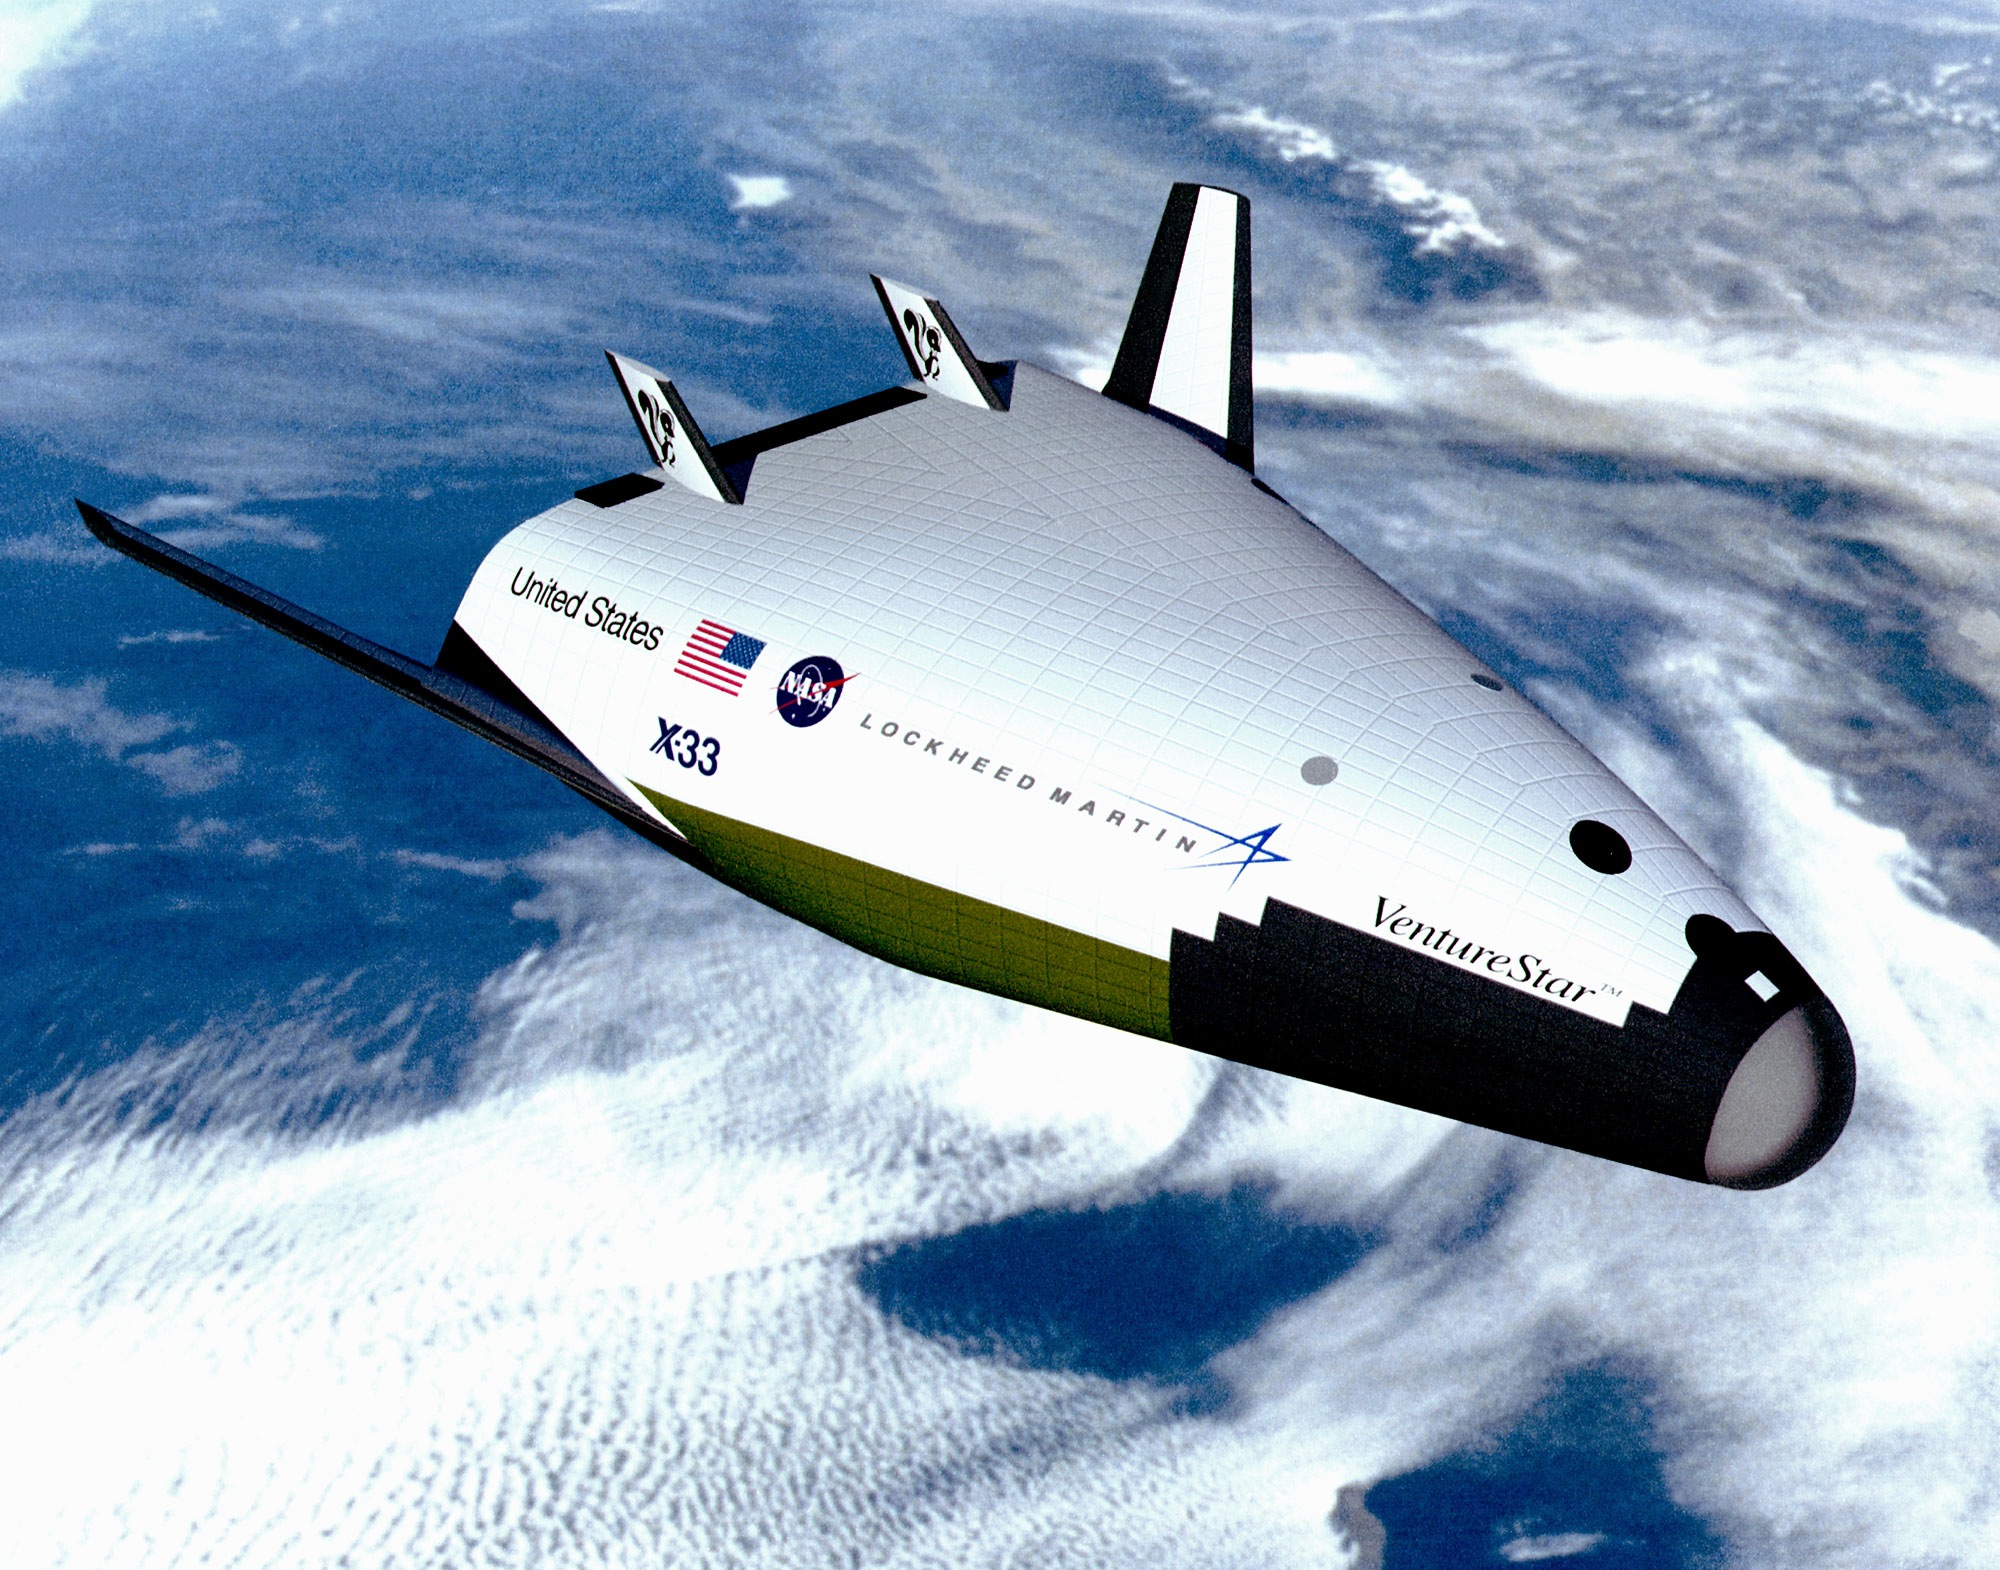 http://upload.wikimedia.org/wikipedia/commons/3/3a/X-33_Venture_Star_in_Orbit.jpg